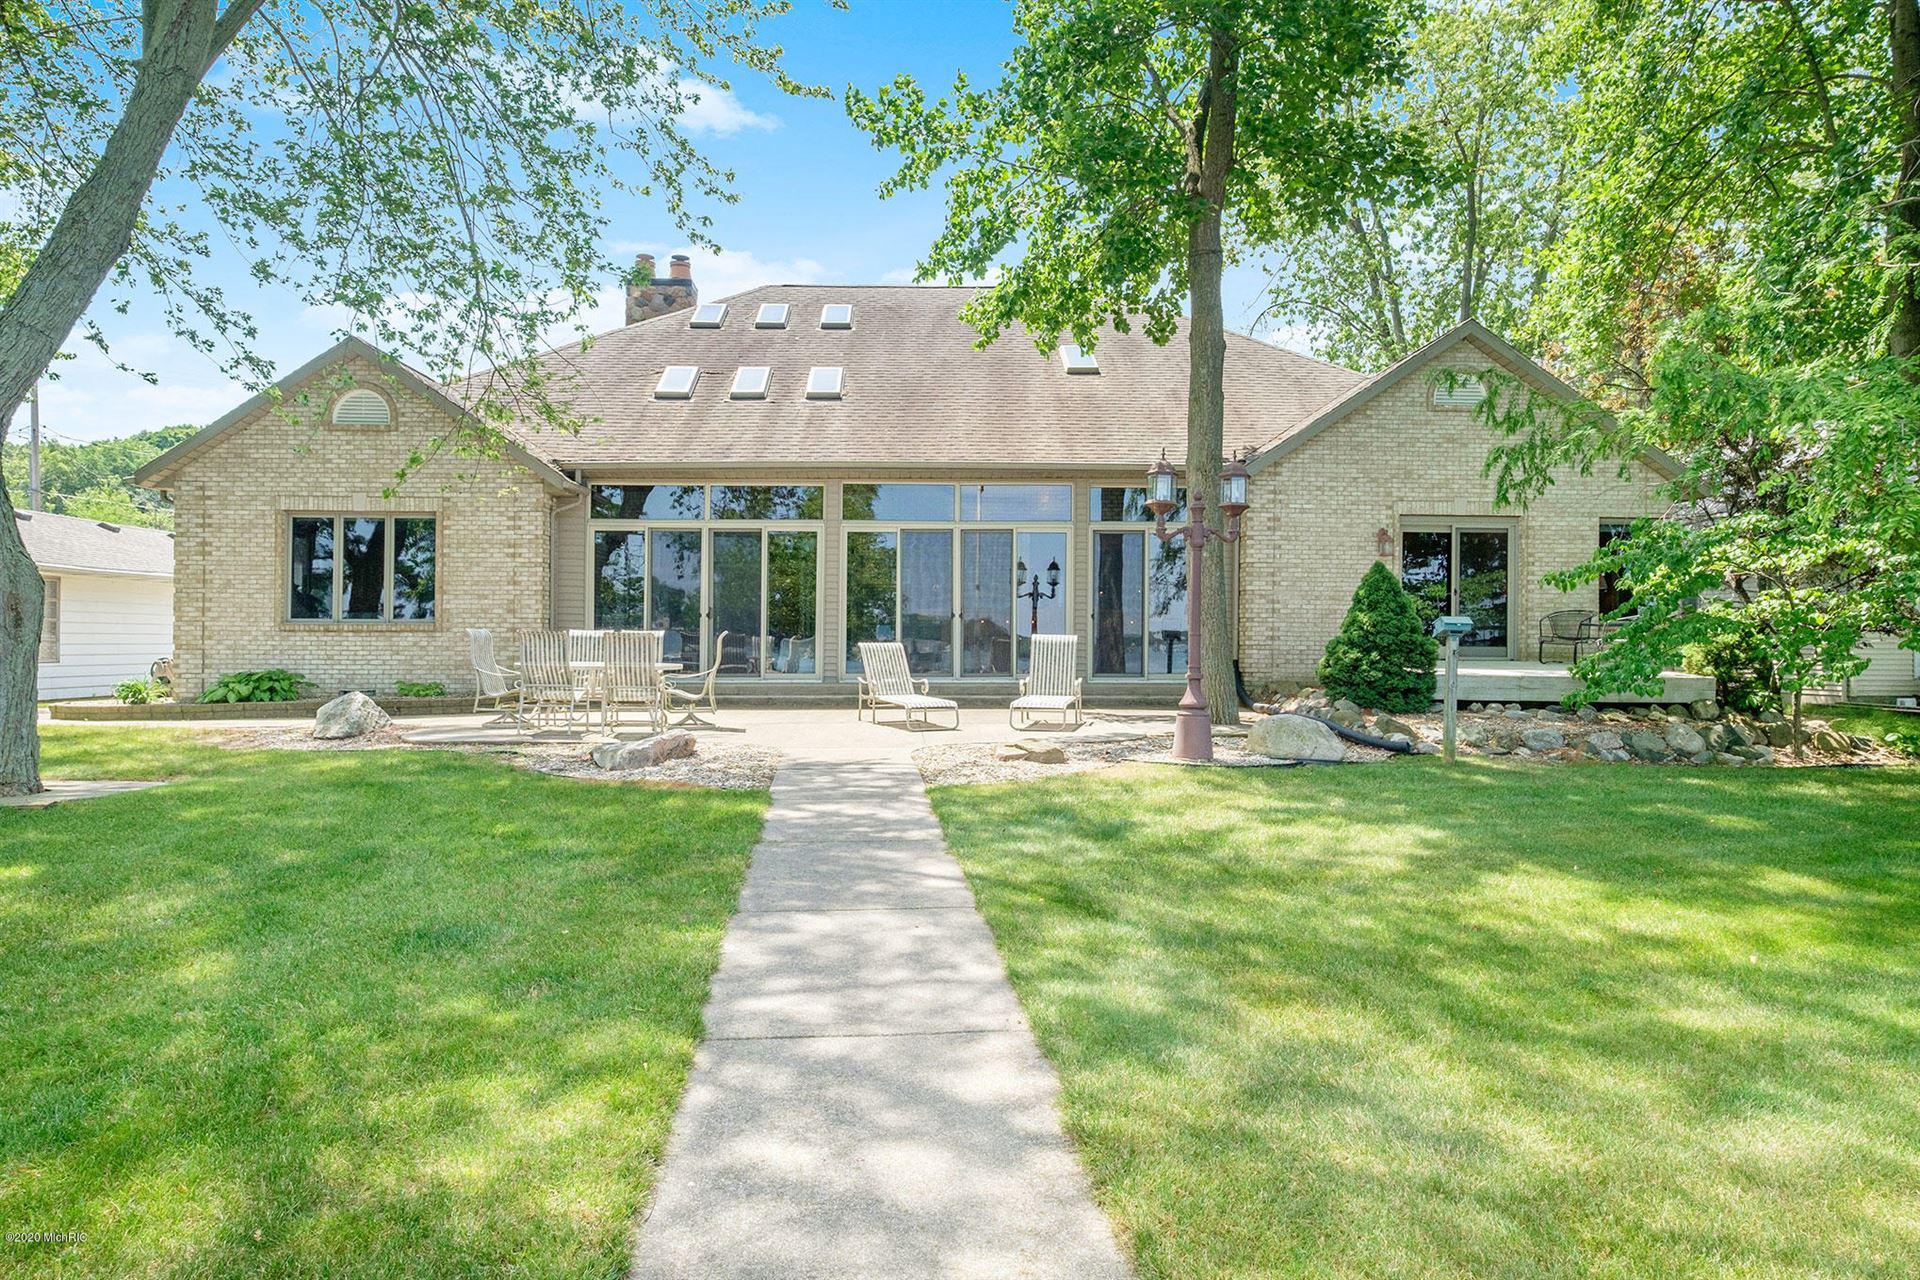 10946 Shady Lane Drive, Middleville, MI 49333 - MLS#: 20025097